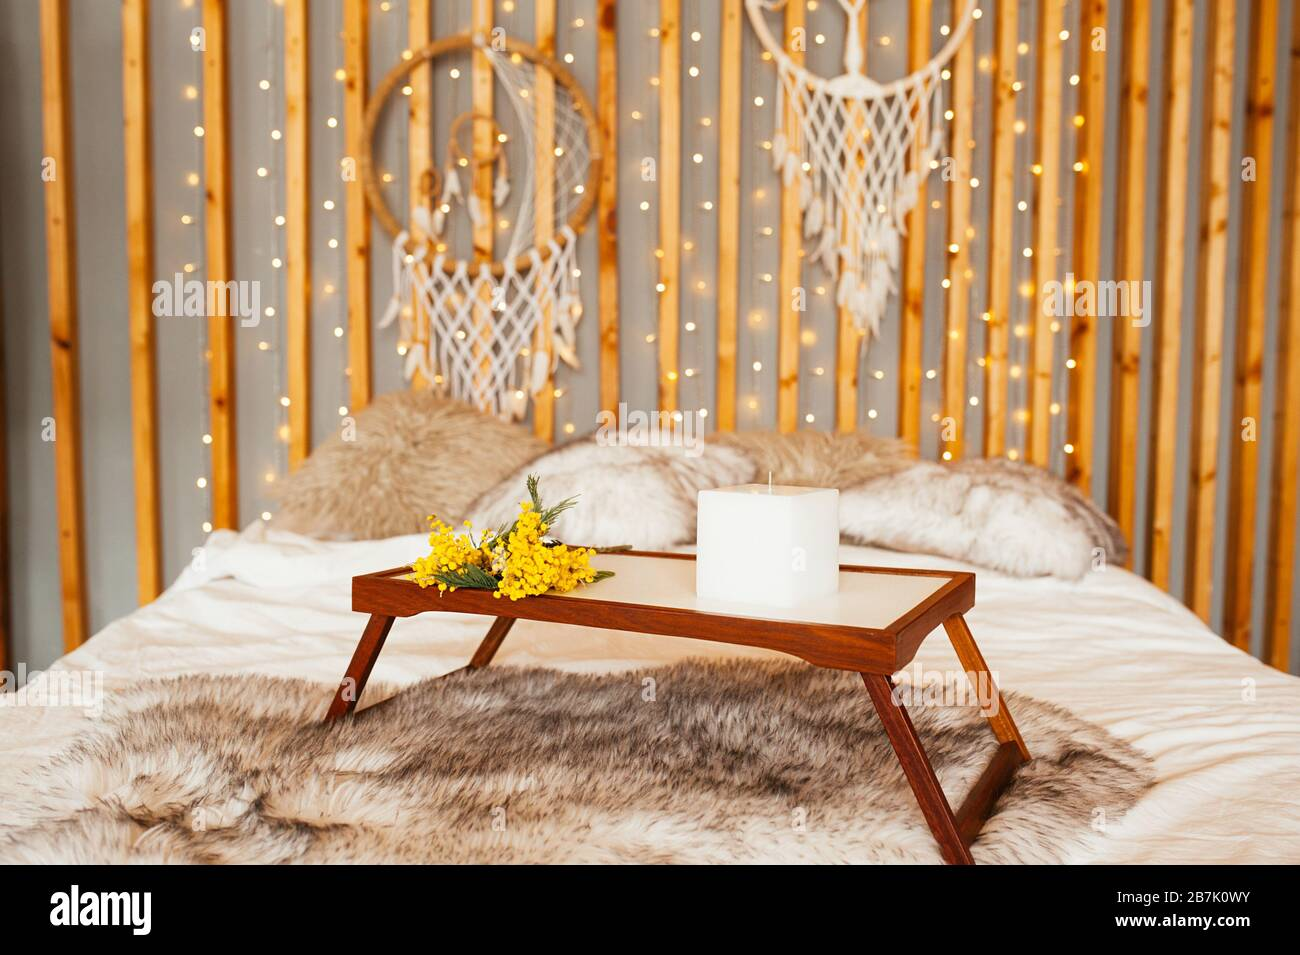 Yellow Mimosa Bouquet On The Wooden Table Breakfast Tray In Bed Boho Bedroom Wooden Wall Decor With Garlands Lamps And Dream Catchers Stock Photo Alamy